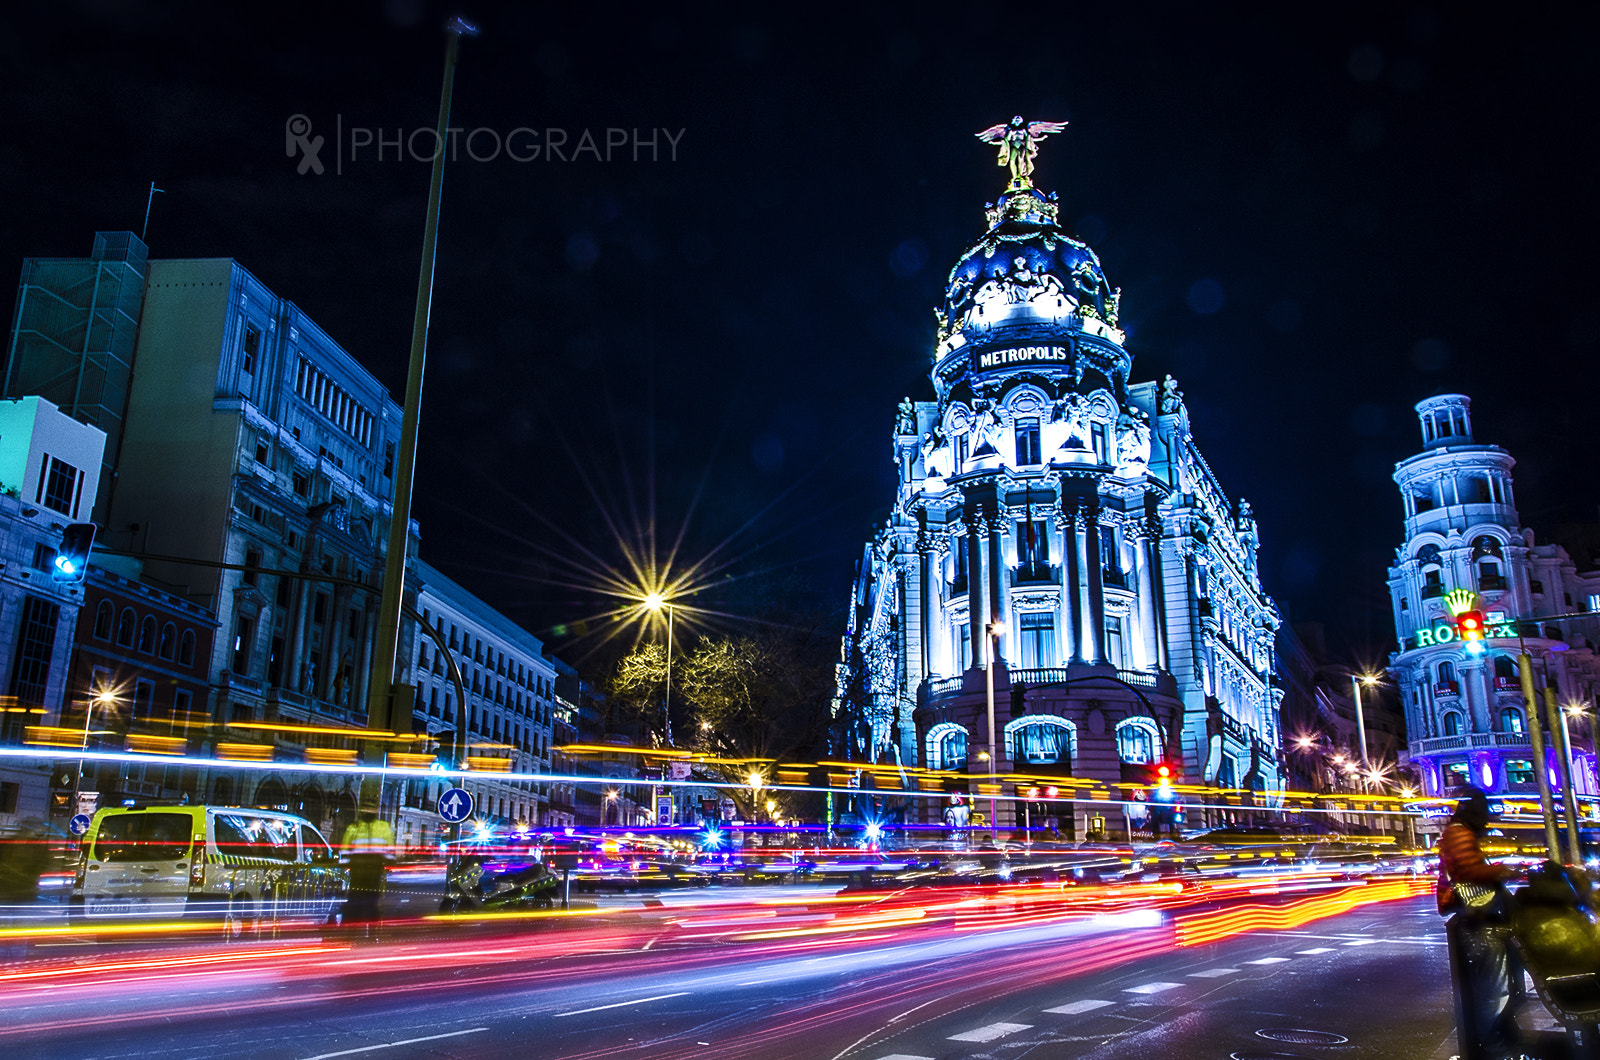 Photograph Magic Night (Gran Vía Madrid) by Rui Xu on 500px